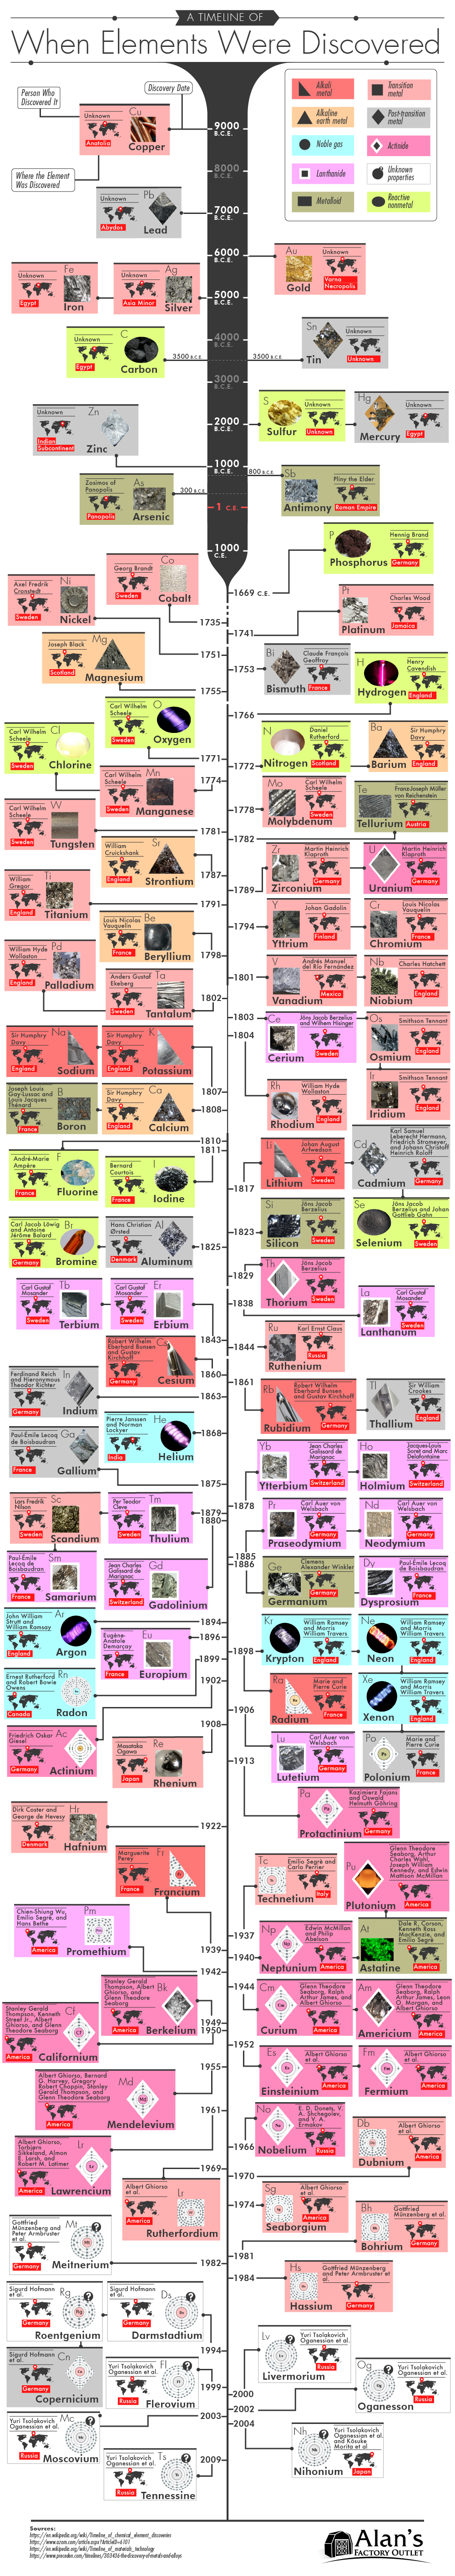 A Timeline of When Elements Were Discovered and Who Discovered Them #infographic